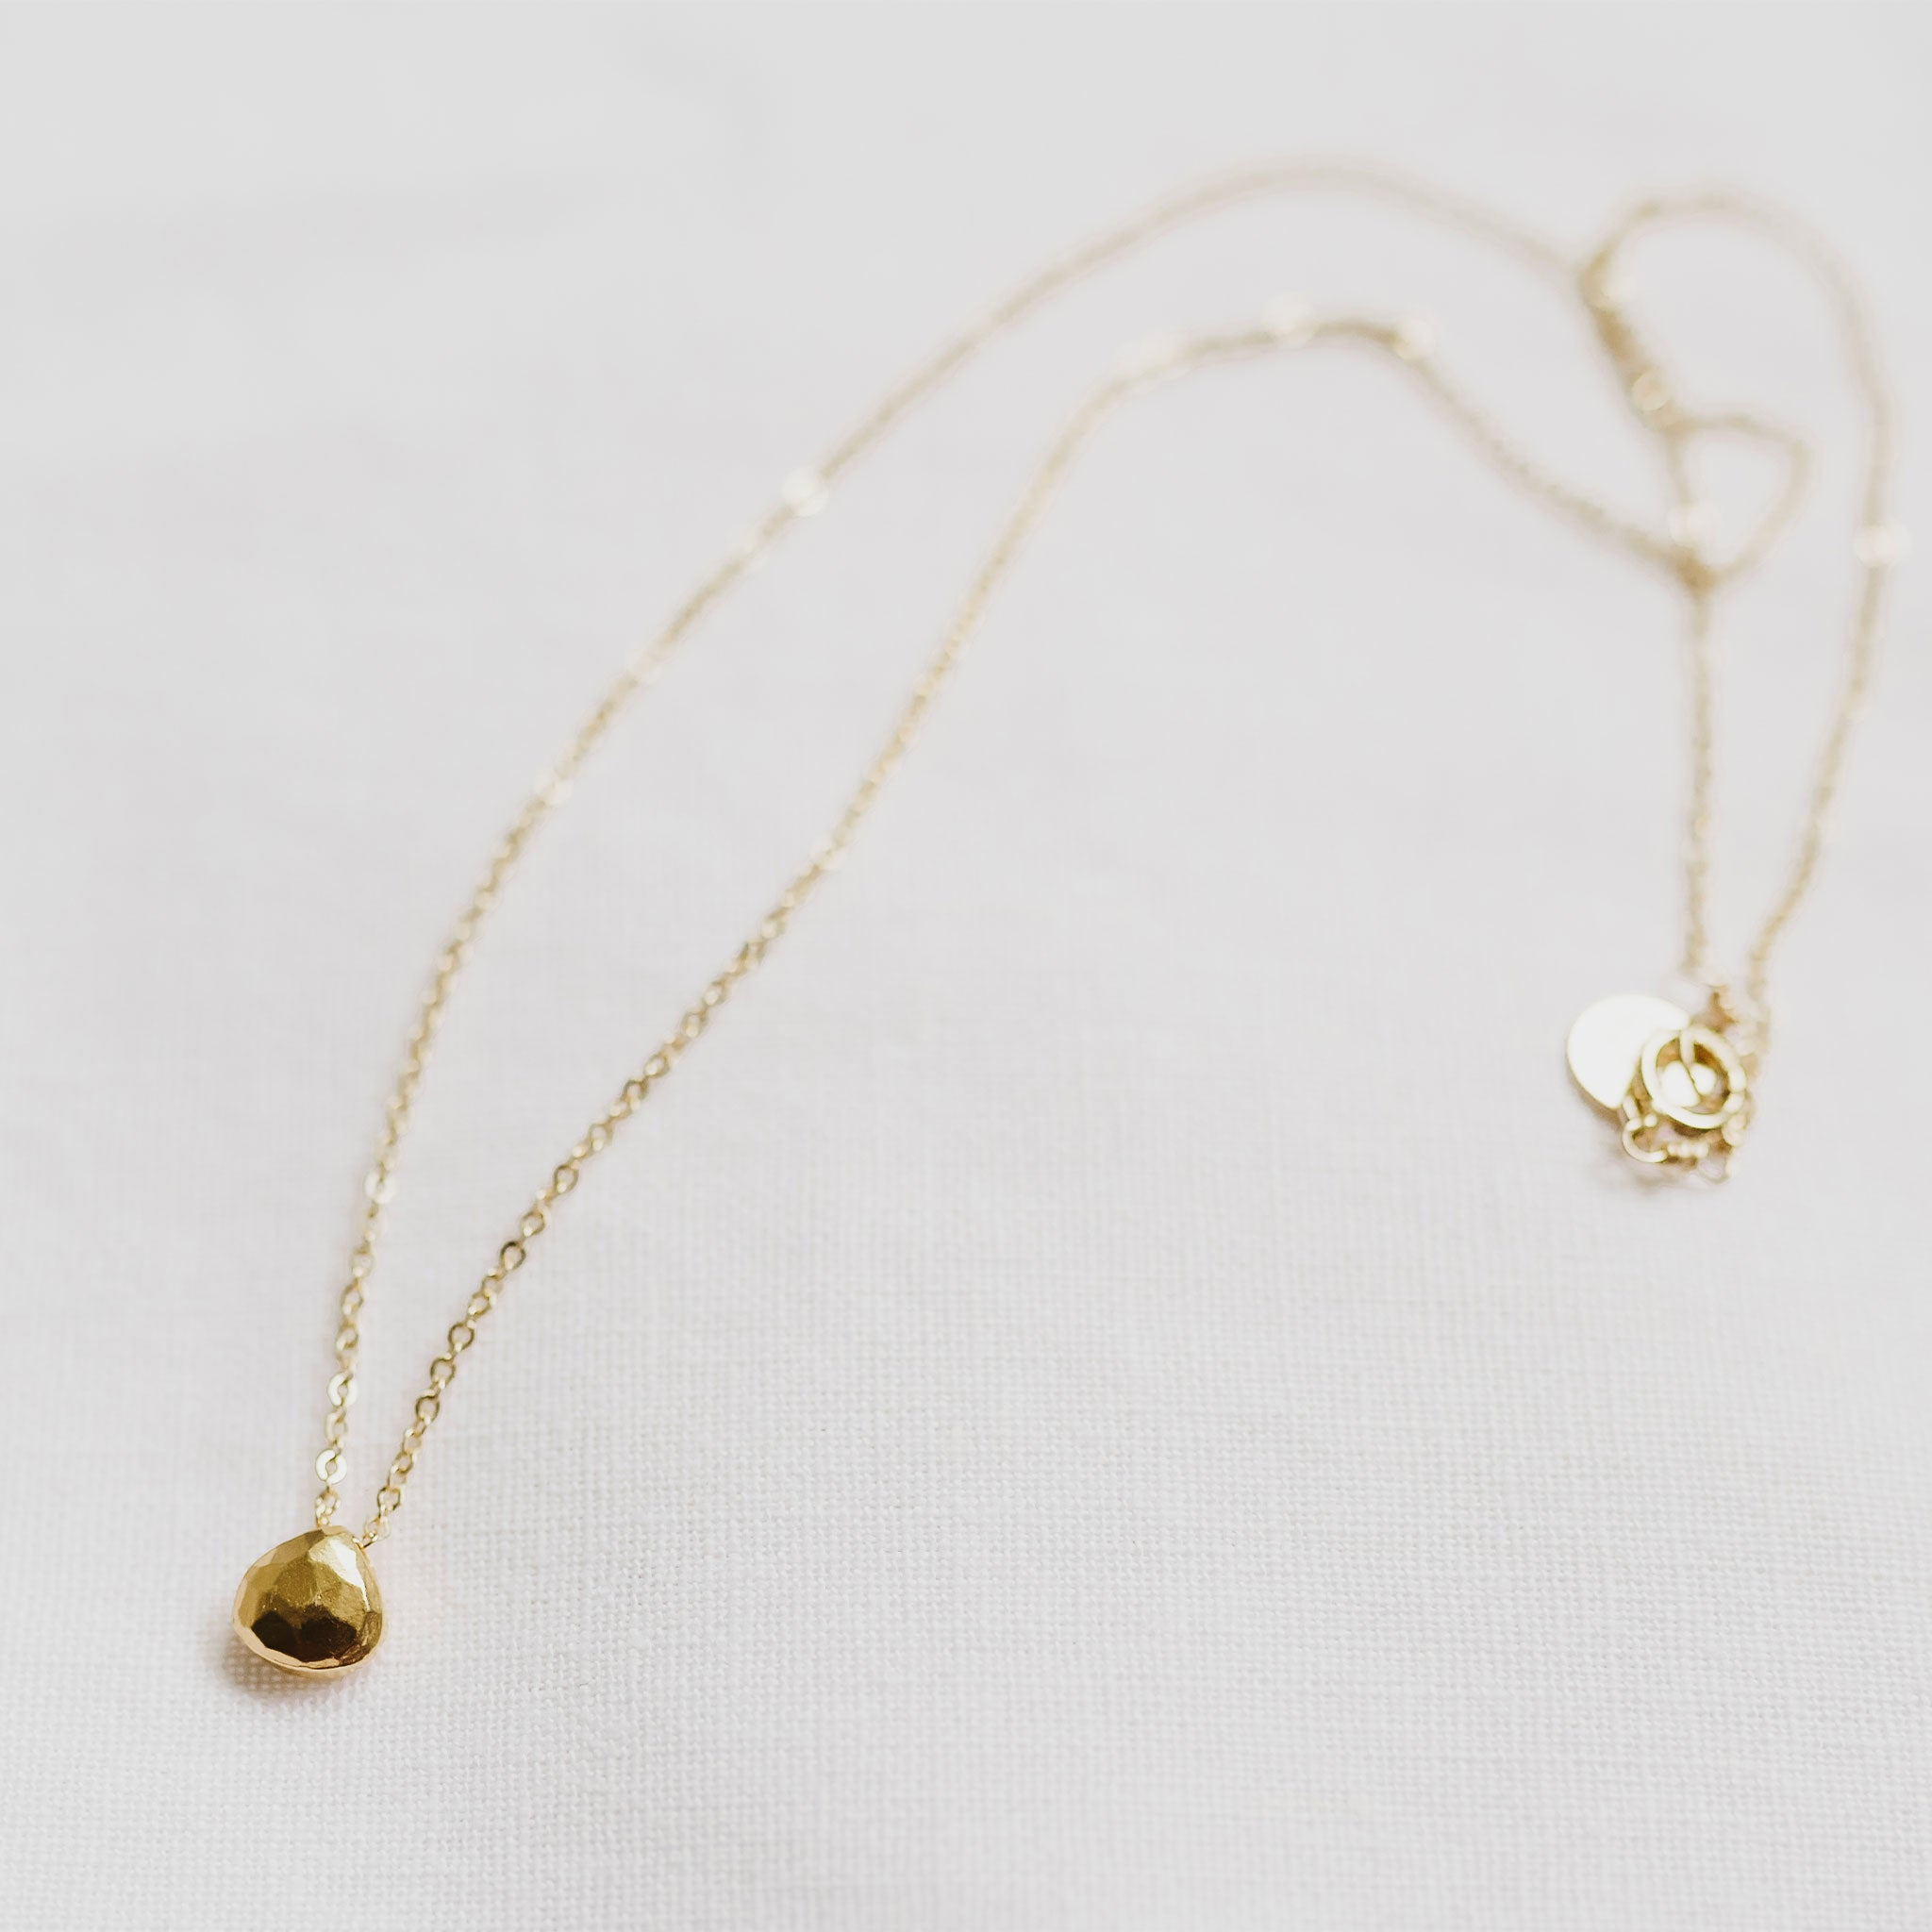 Wanderlust Life jewellery gold chain necklace with 14k gold fill gemstone. Gold gemstone necklace with gold chain. Wanderlust Life gemstone jewellery handmade in the UK.